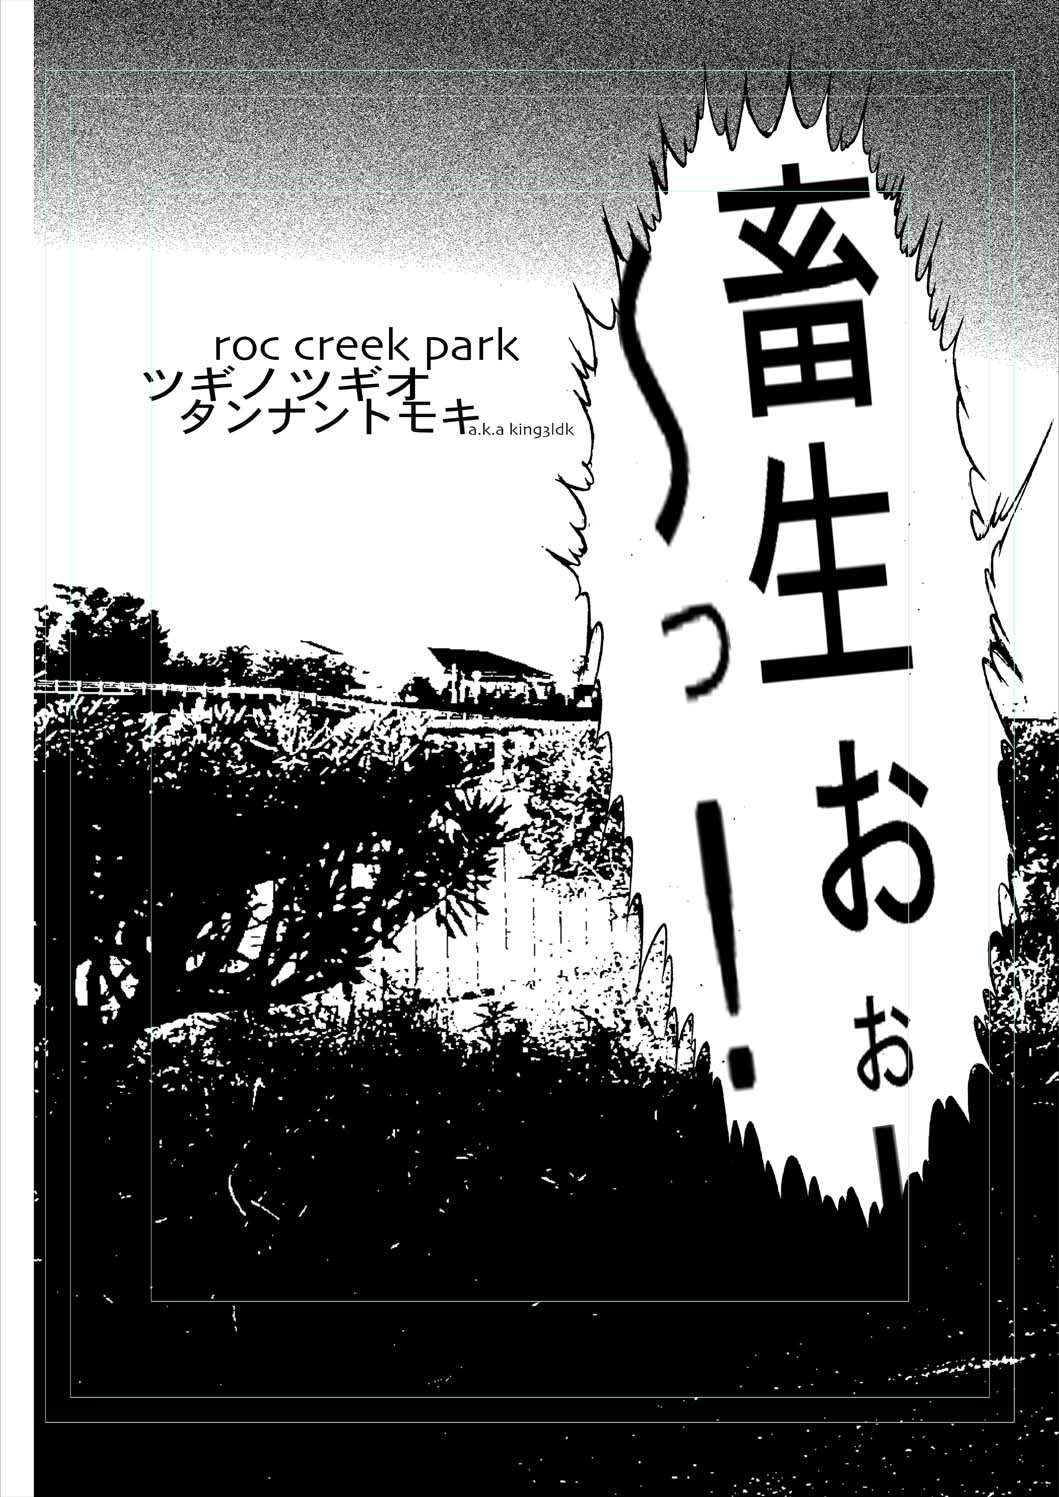 """roc creek  park \""1shit/flow者_f0207613_1213503.jpg"